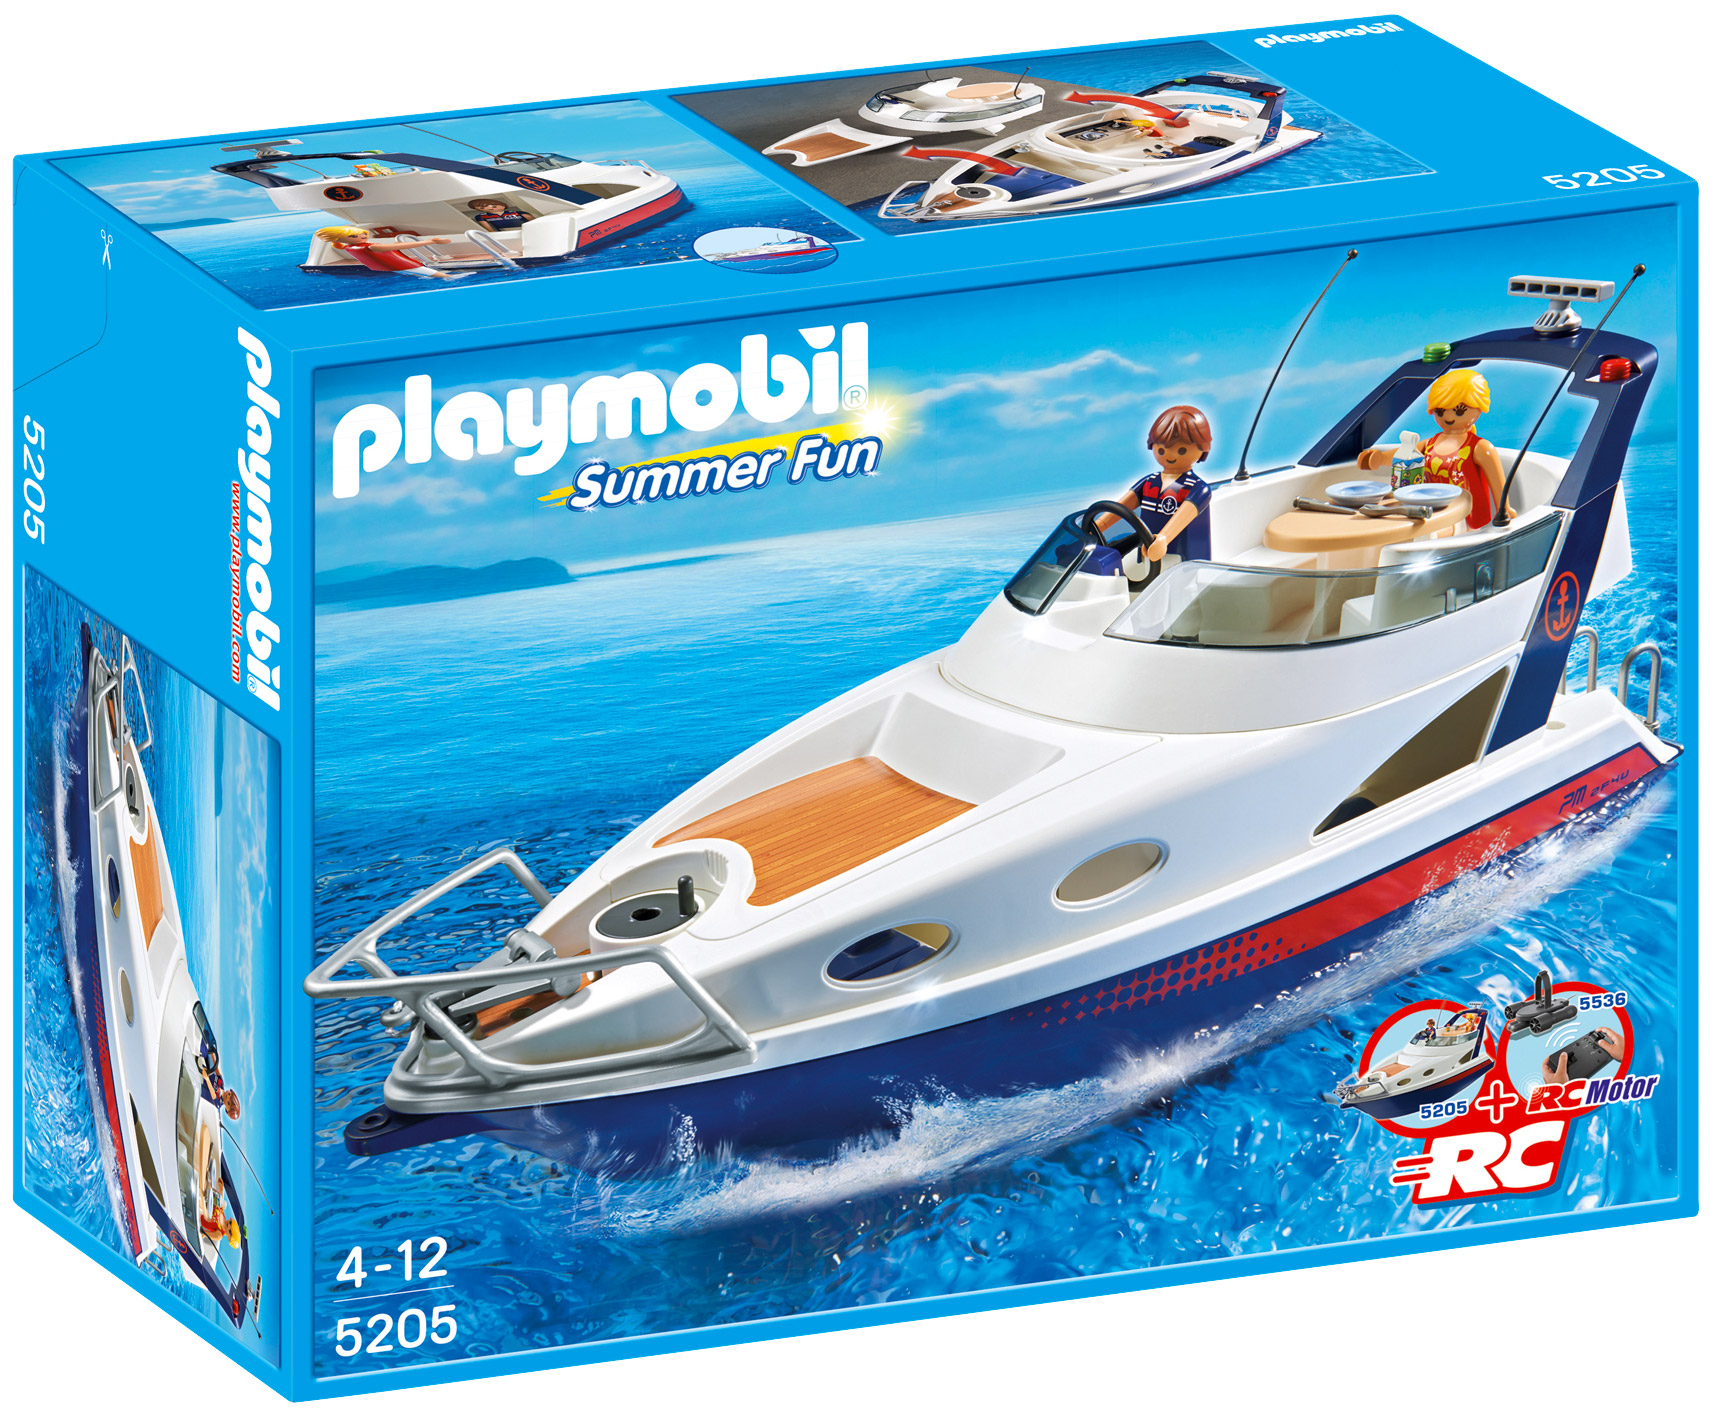 playmobil summer fun 5205 pas cher yacht de luxe. Black Bedroom Furniture Sets. Home Design Ideas